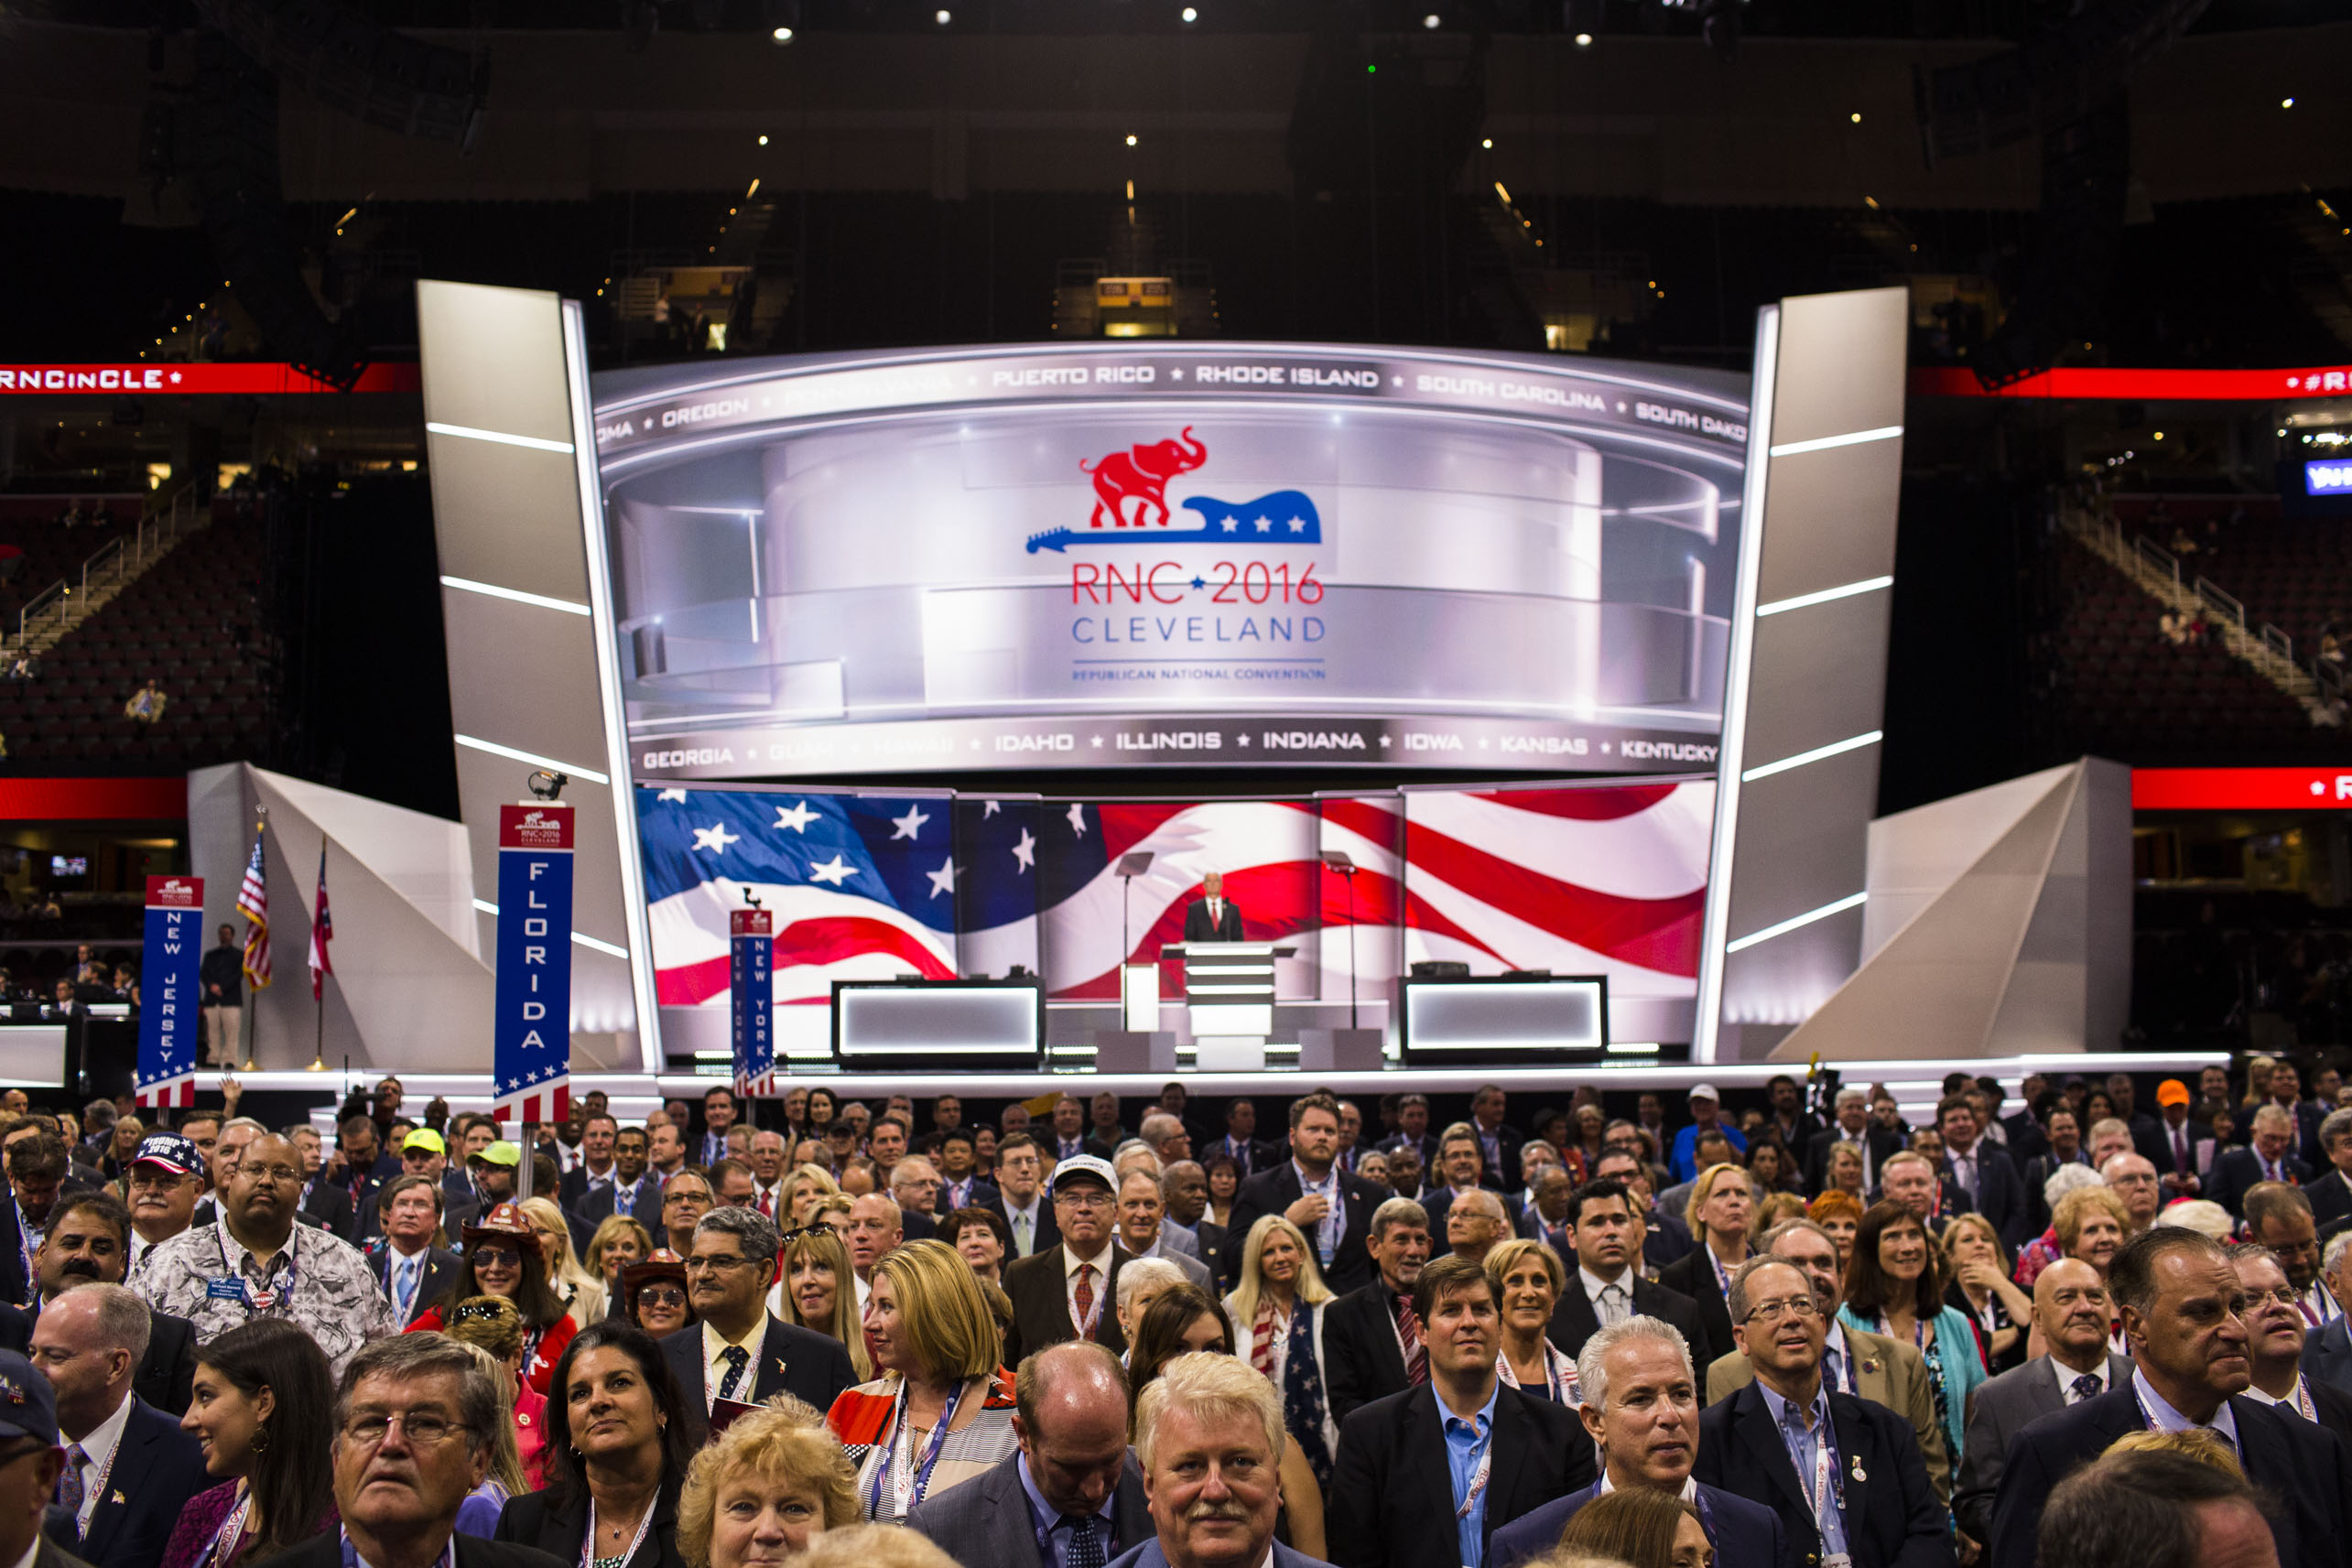 Delegates pose for a group photo at the Republican National Convention on Monday, July 18, 2016, in Cleveland.